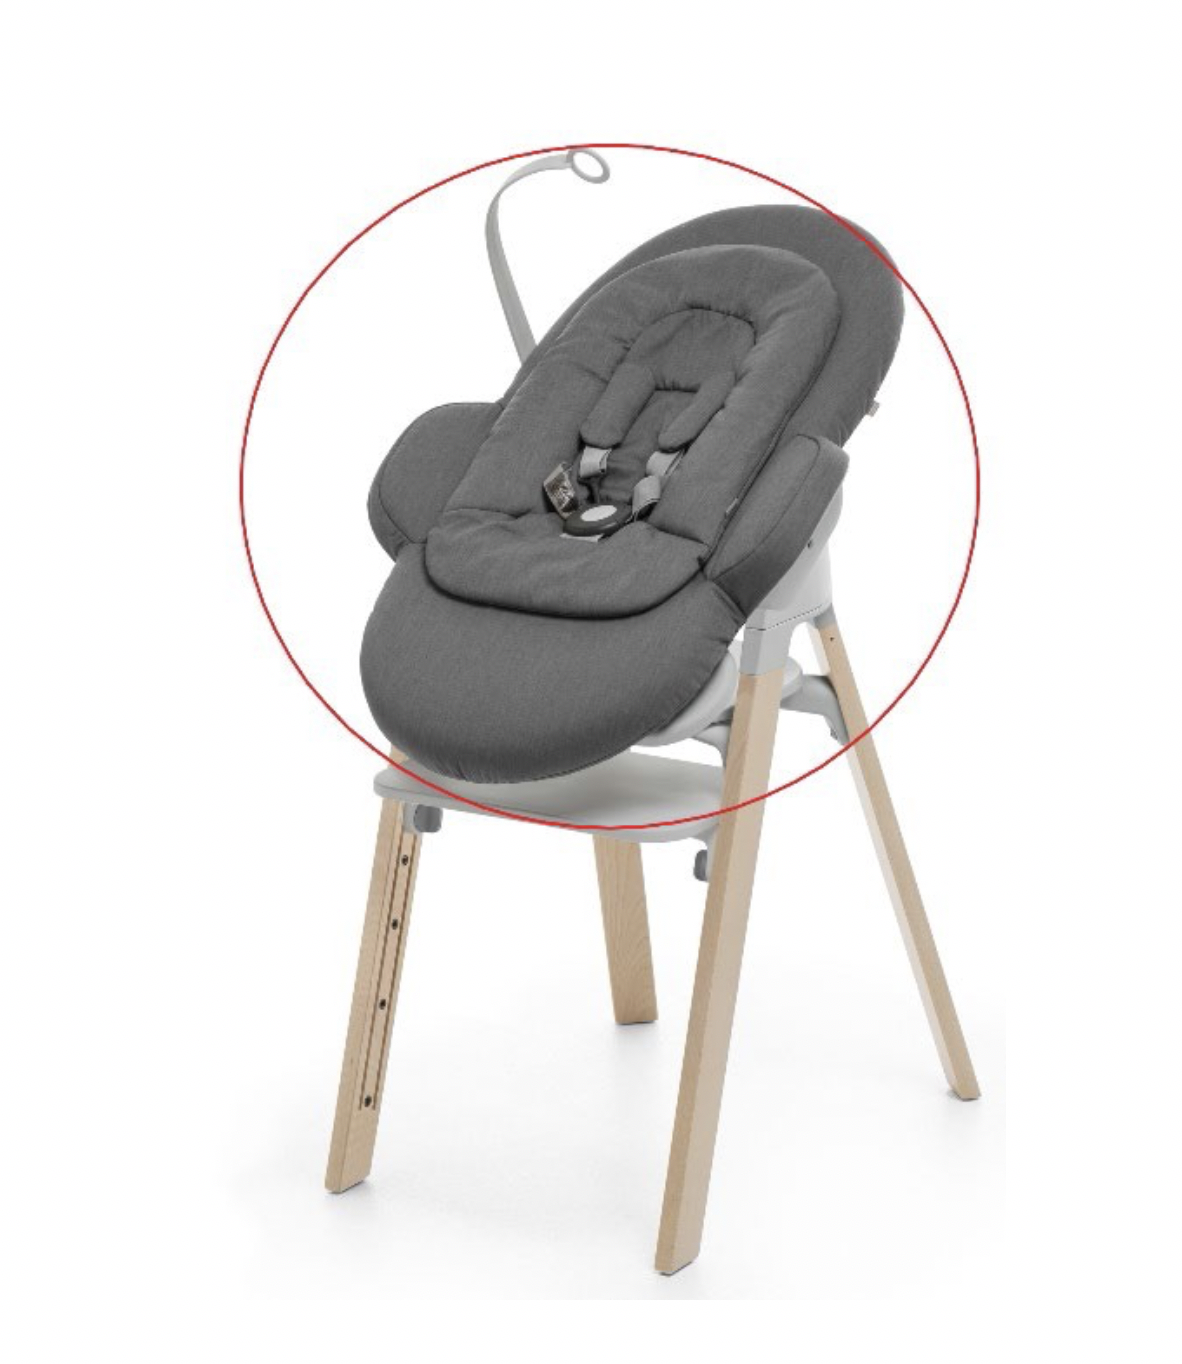 Stokke Steps Chair used with recalled bouncer